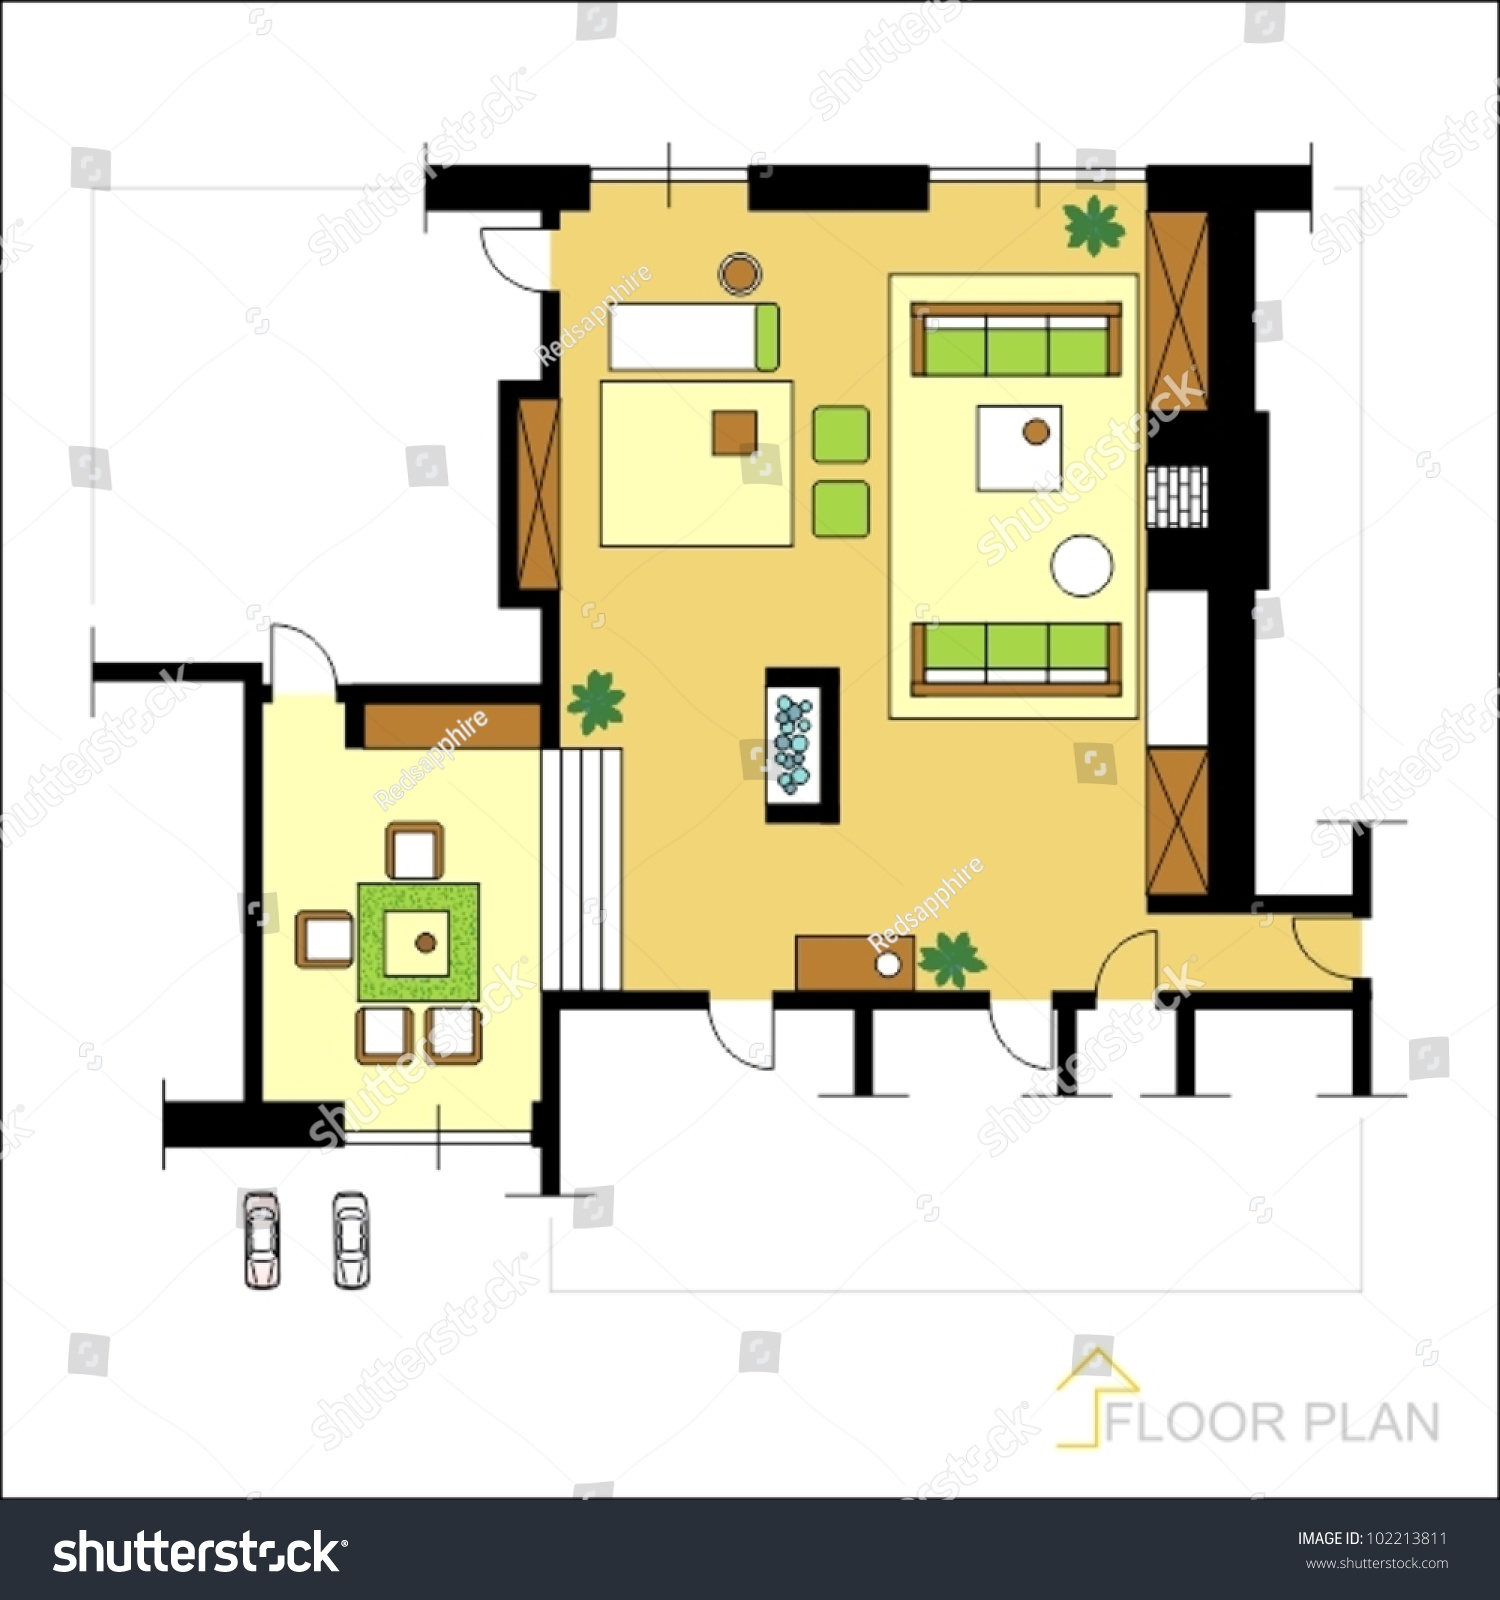 Architectural vector apartment floor plan stock vector for Apartment stock plans